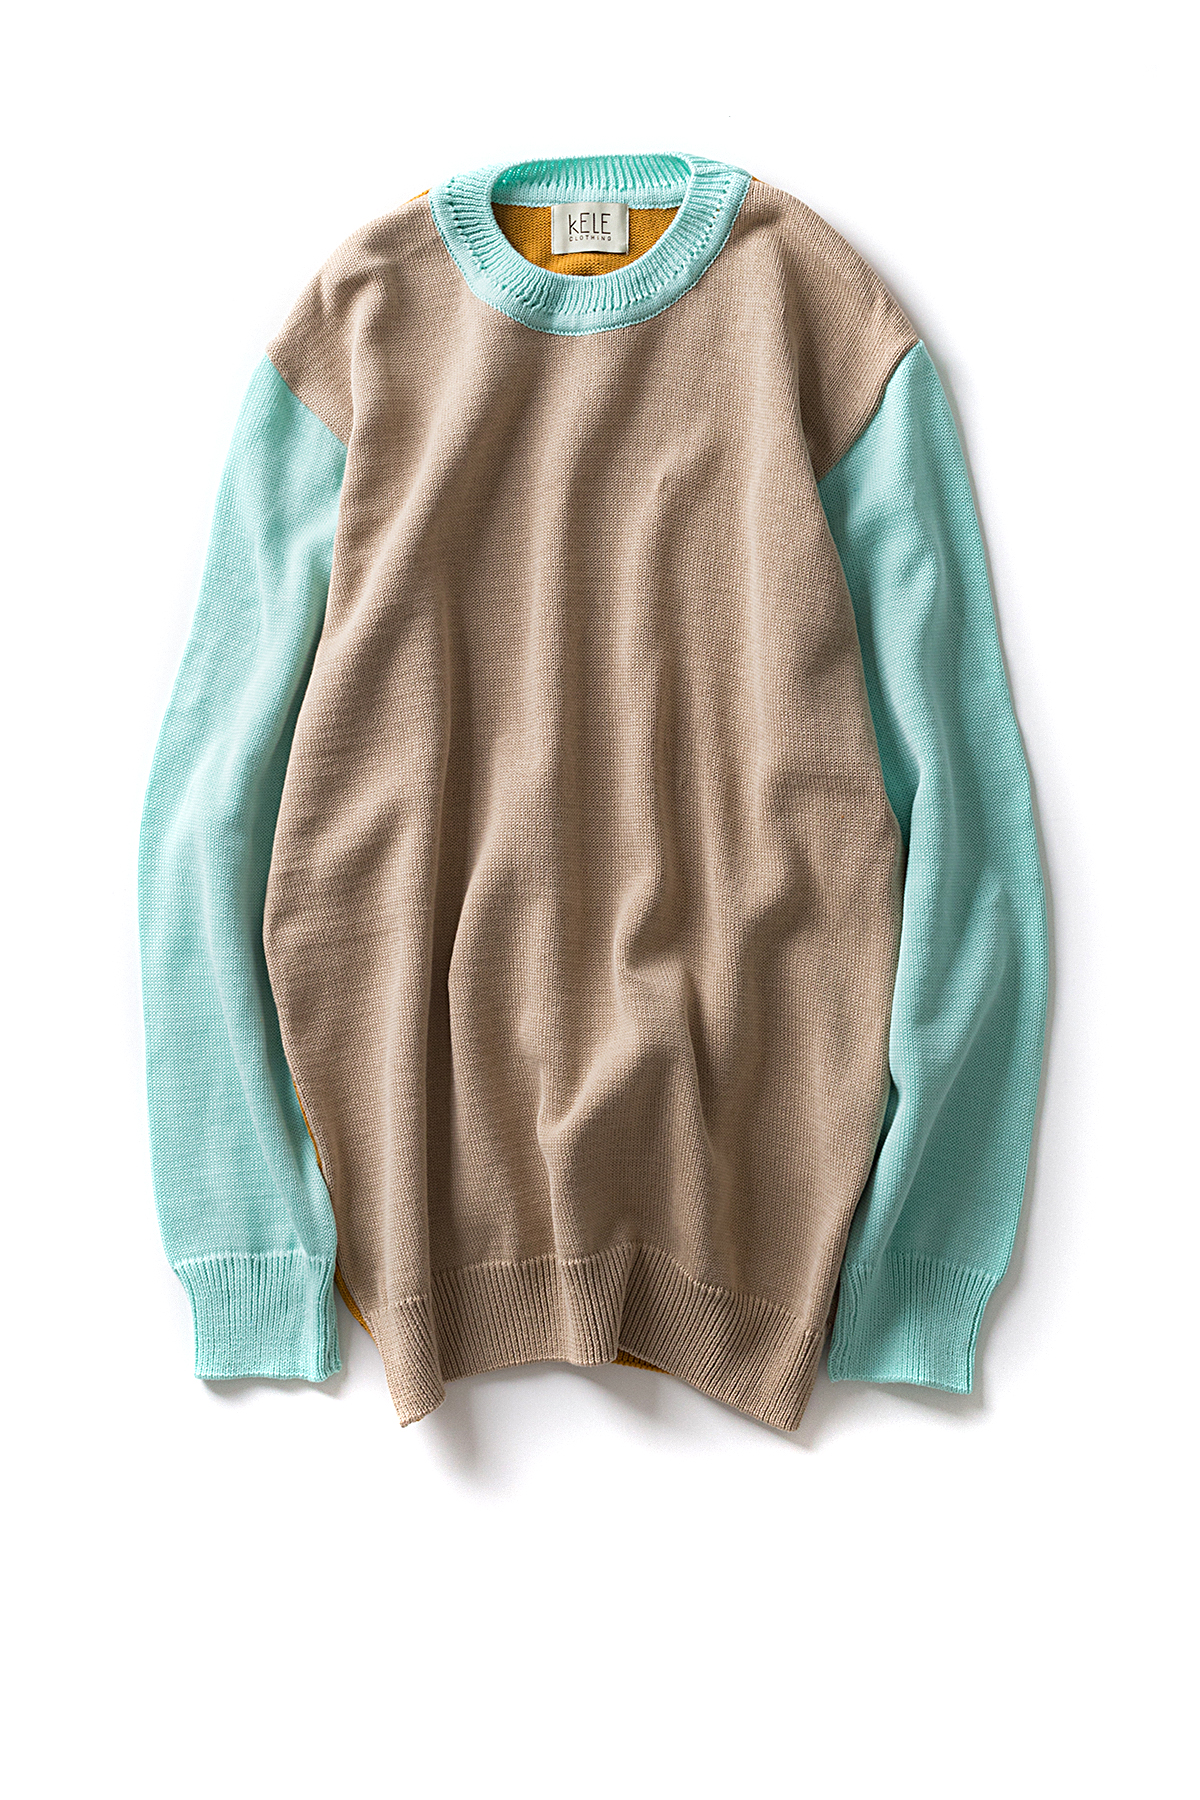 KELE Clothing : BASIC (Beige / Gold / Mint)